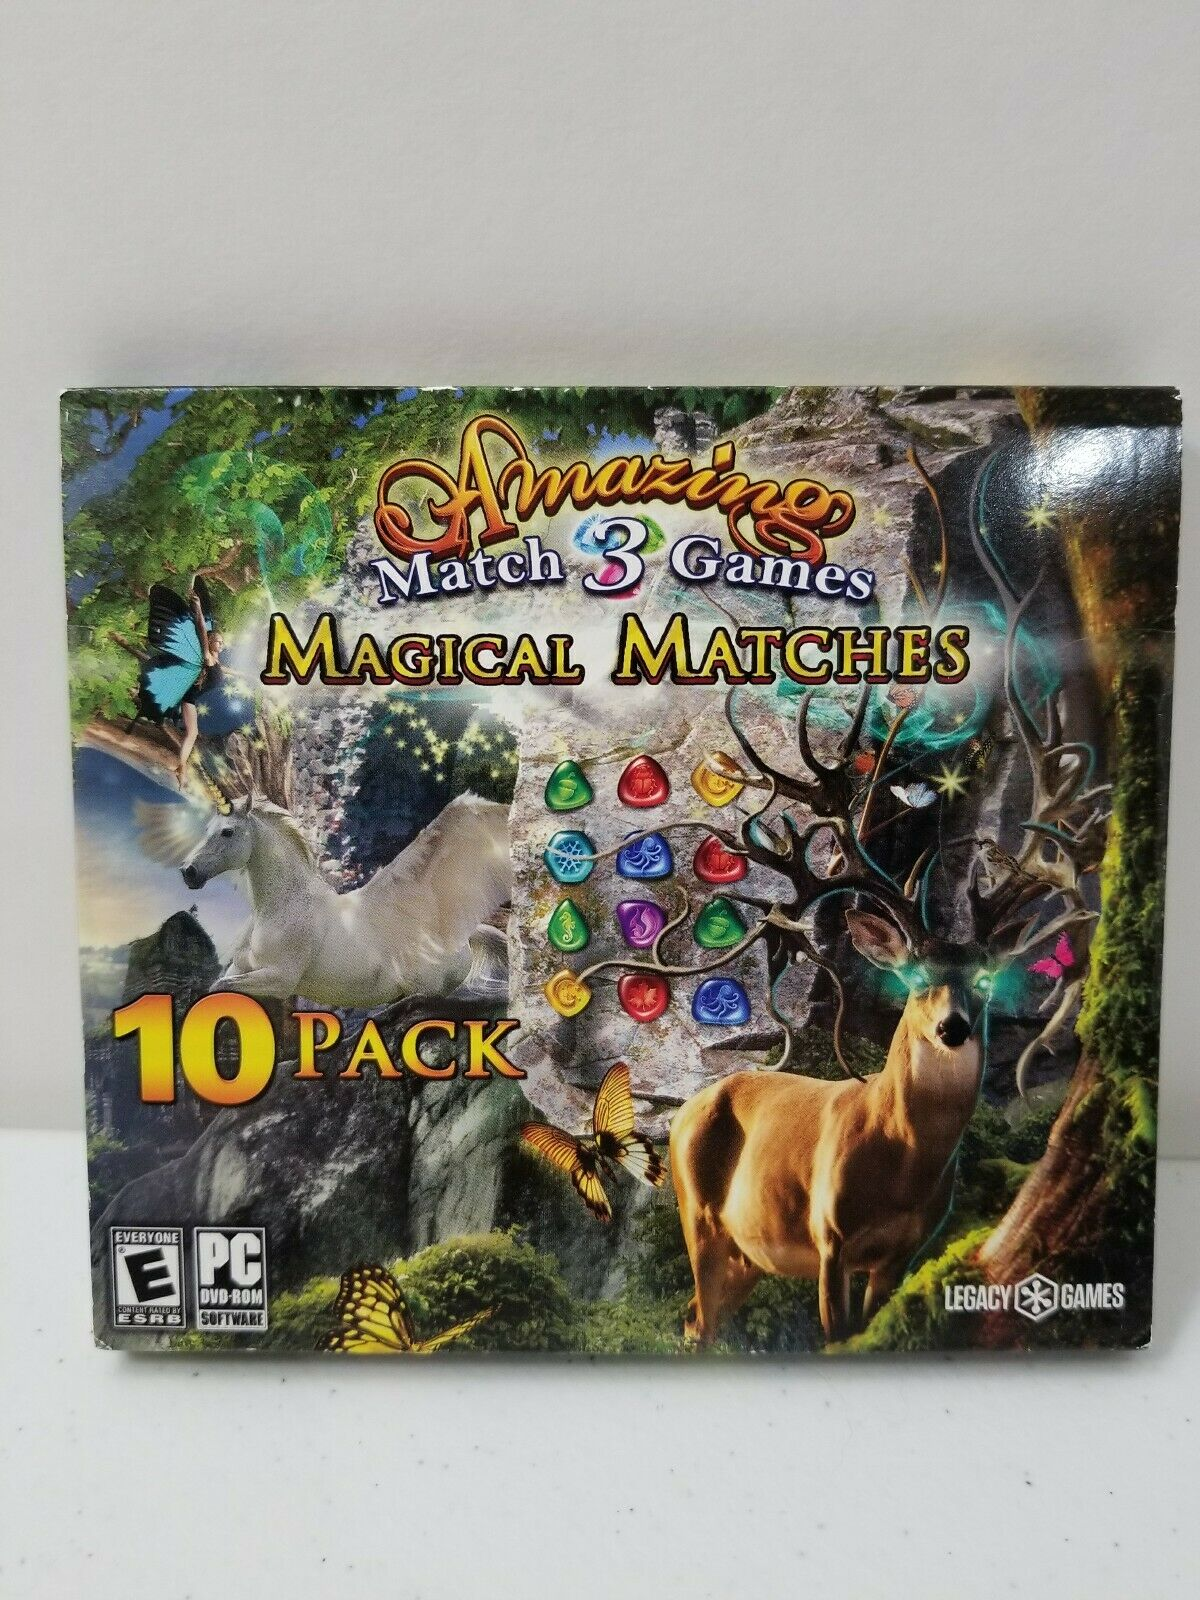 Magical Matches 10 Pack Amazing Match 3 Games Pc Game Free Shipping For Sale Online